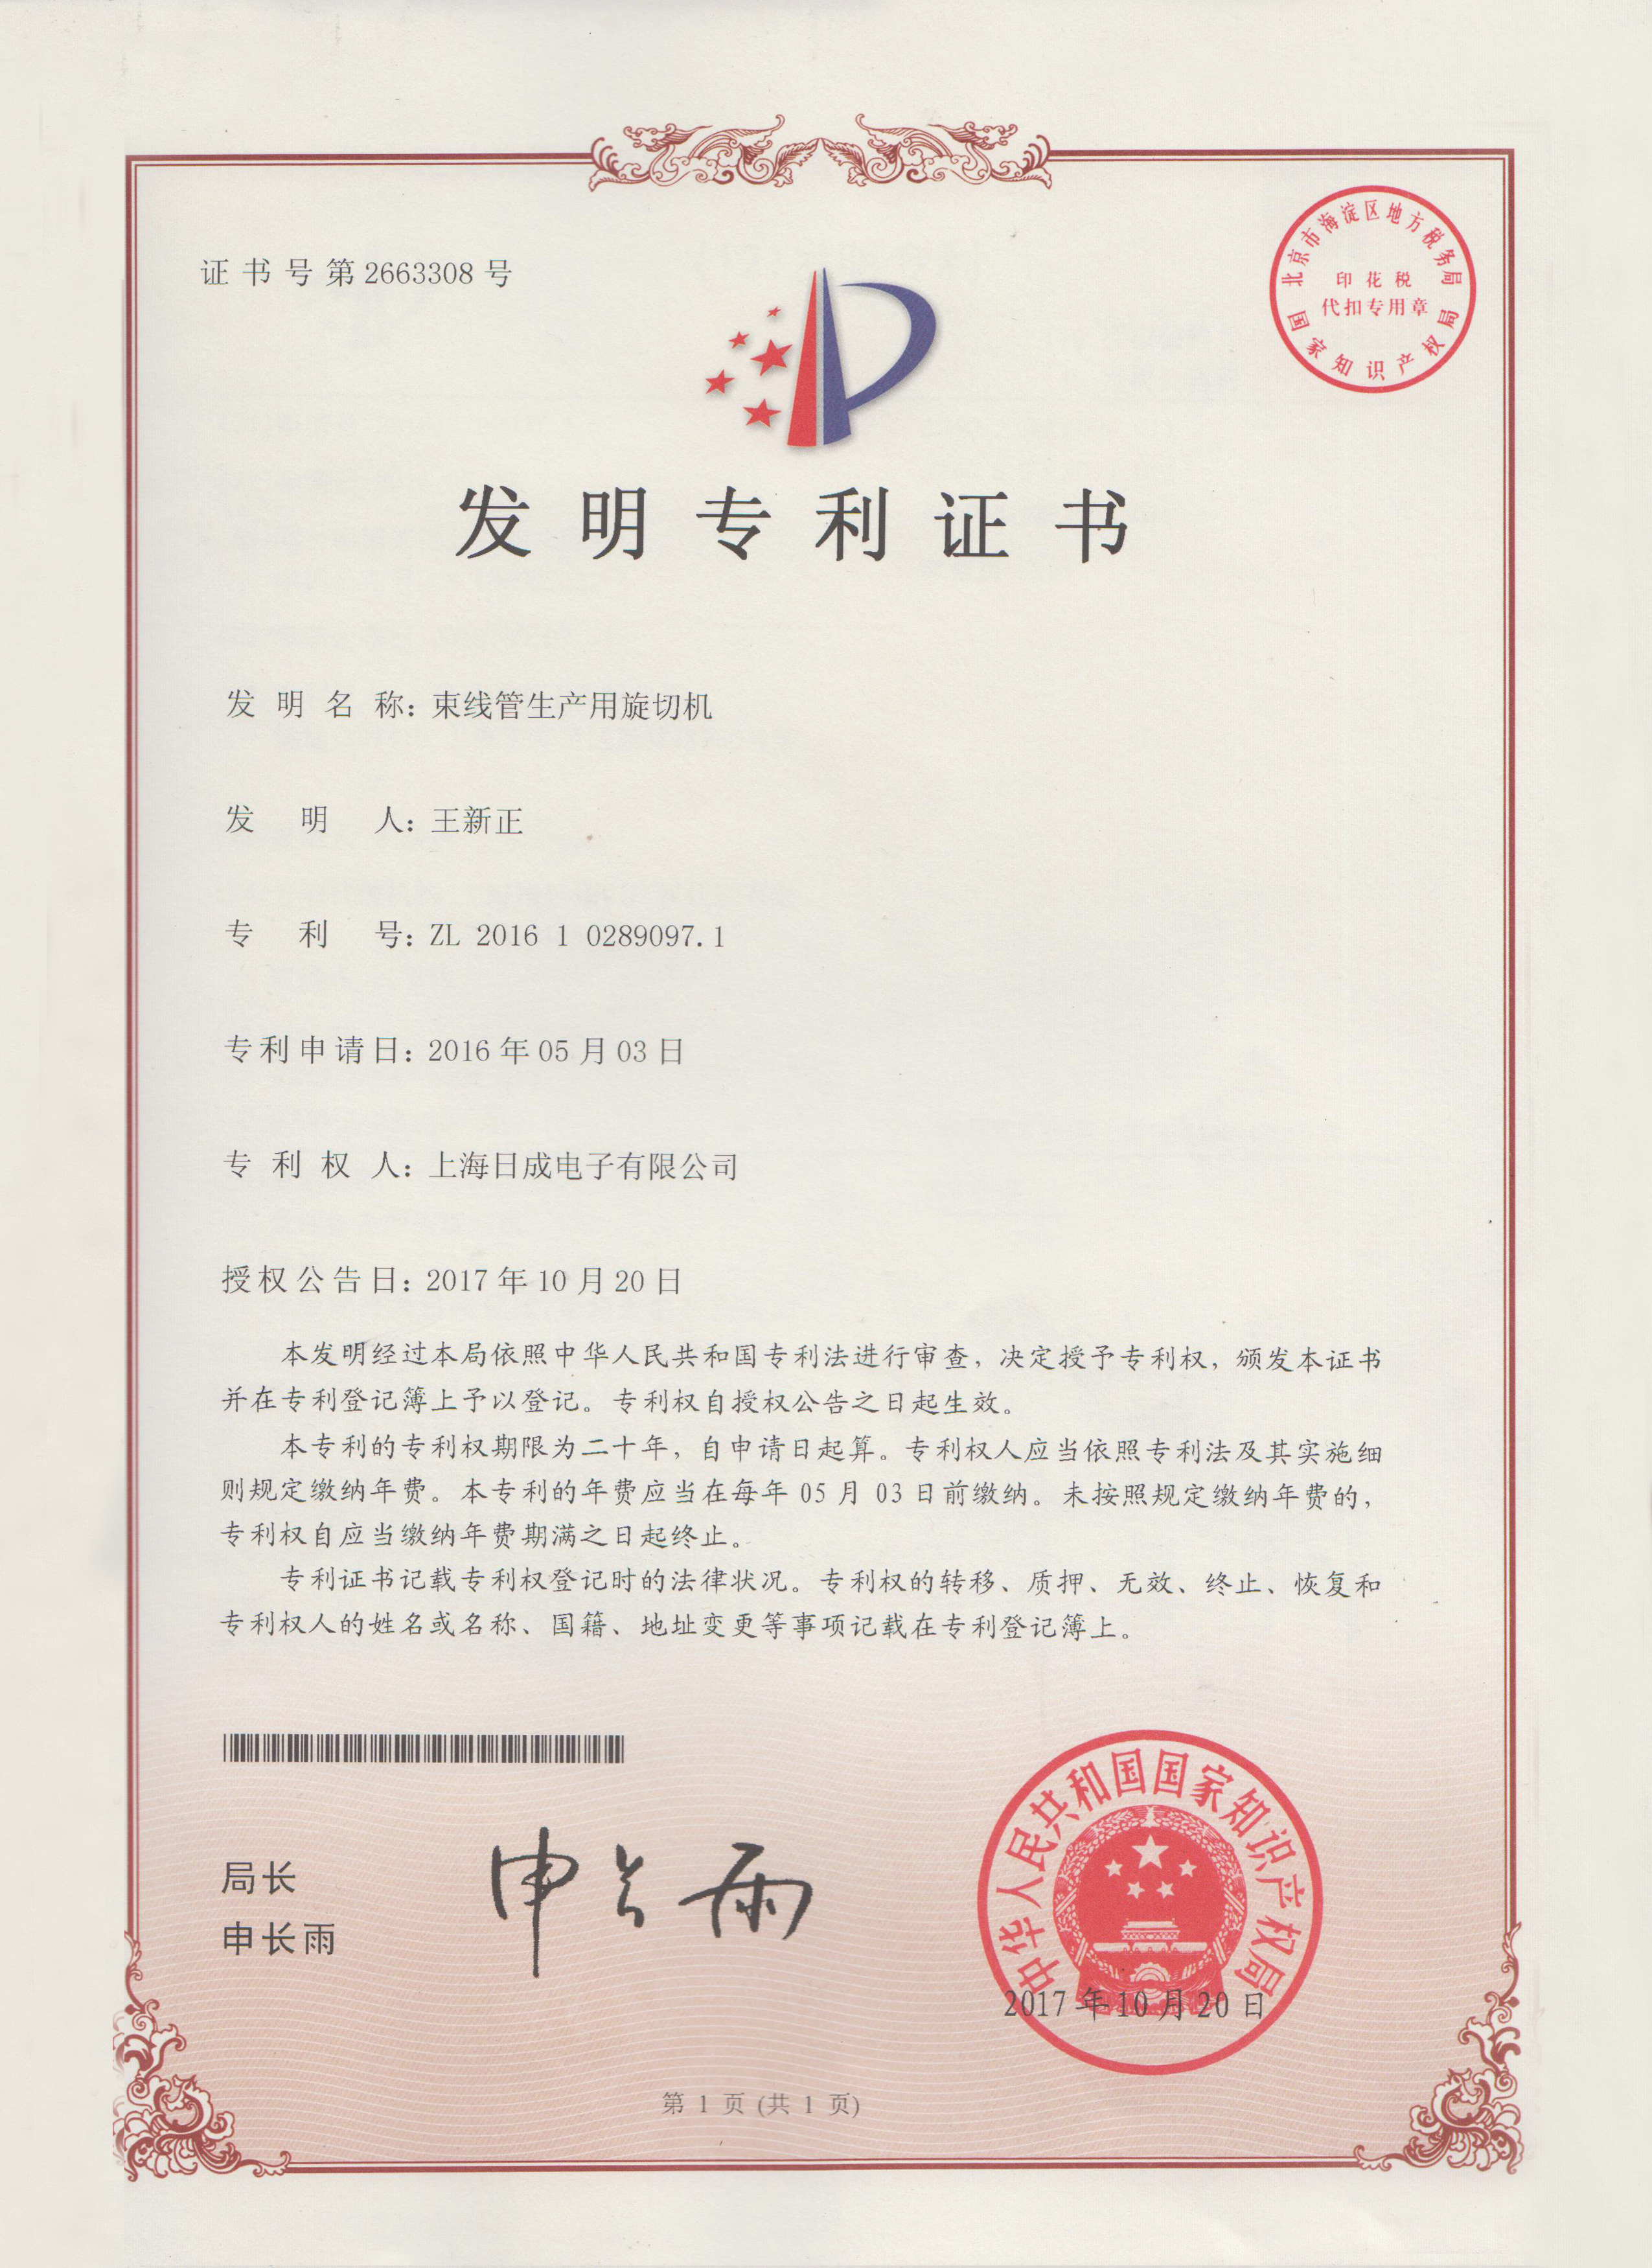 Wire harness production peeling machine  -Patent Certificate No:2663308